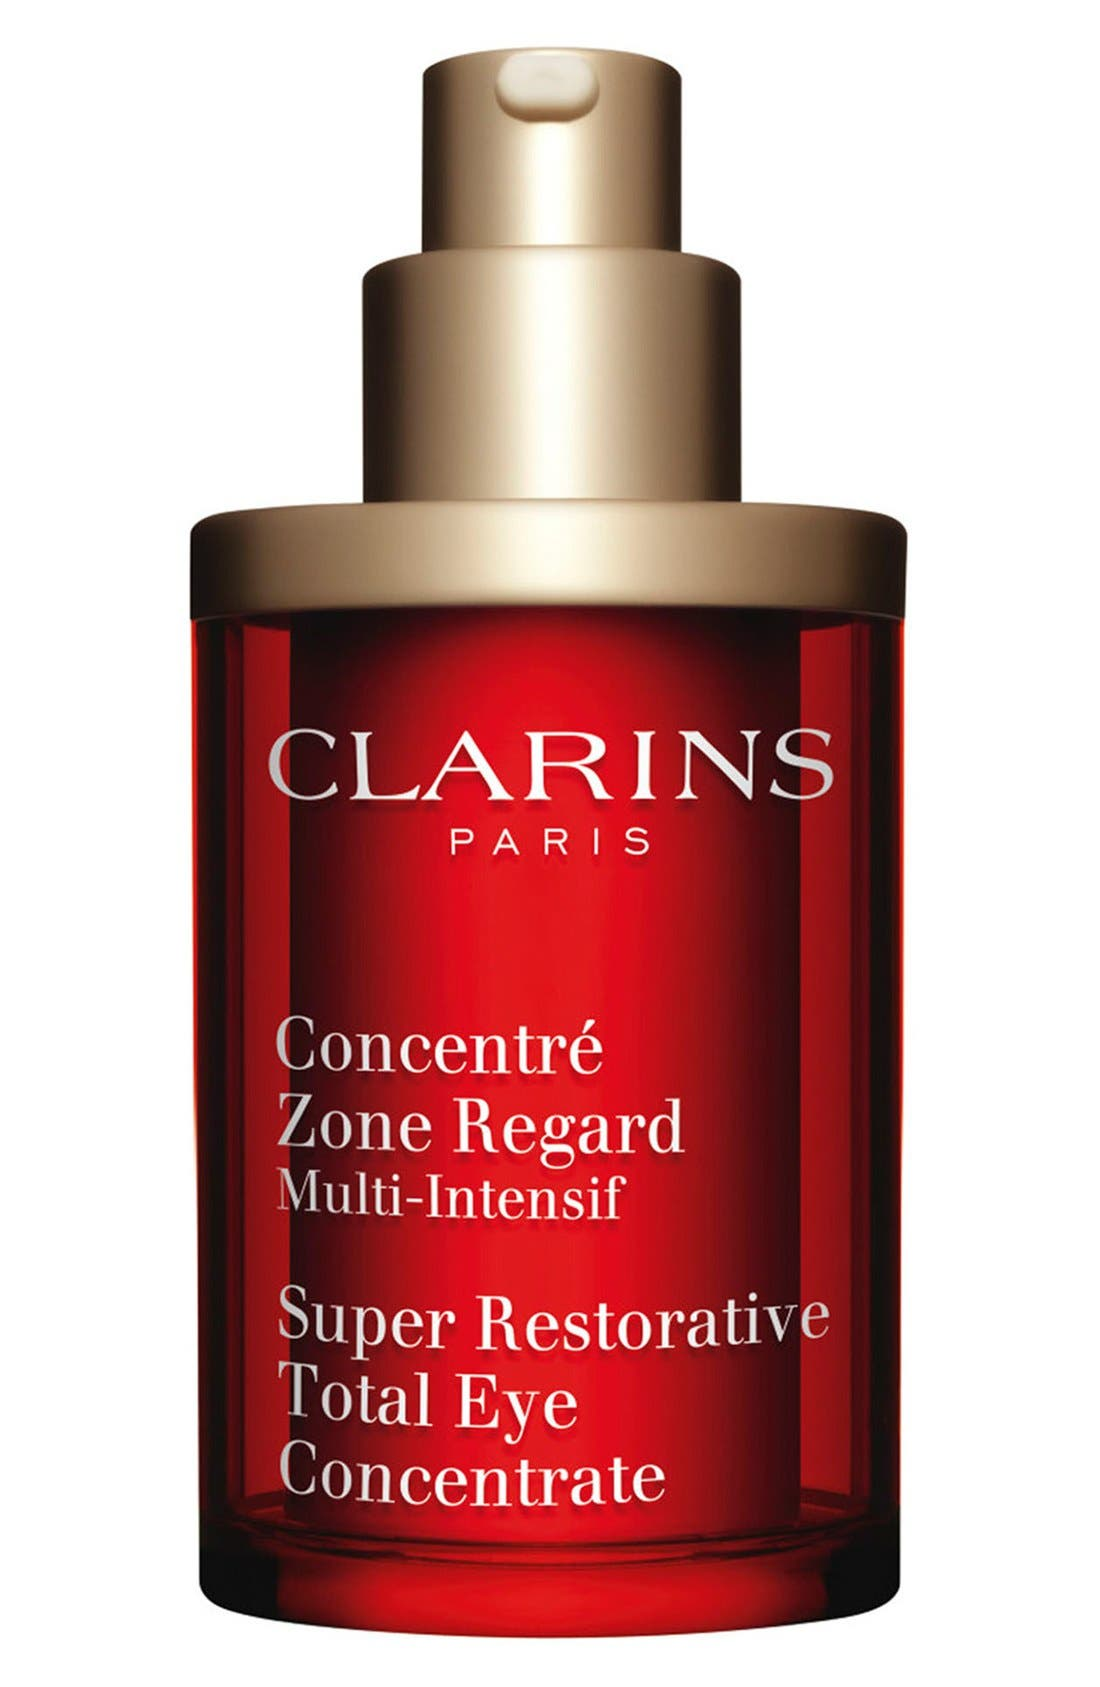 Super Restorative Total Eye Concentrate by Clarins #2